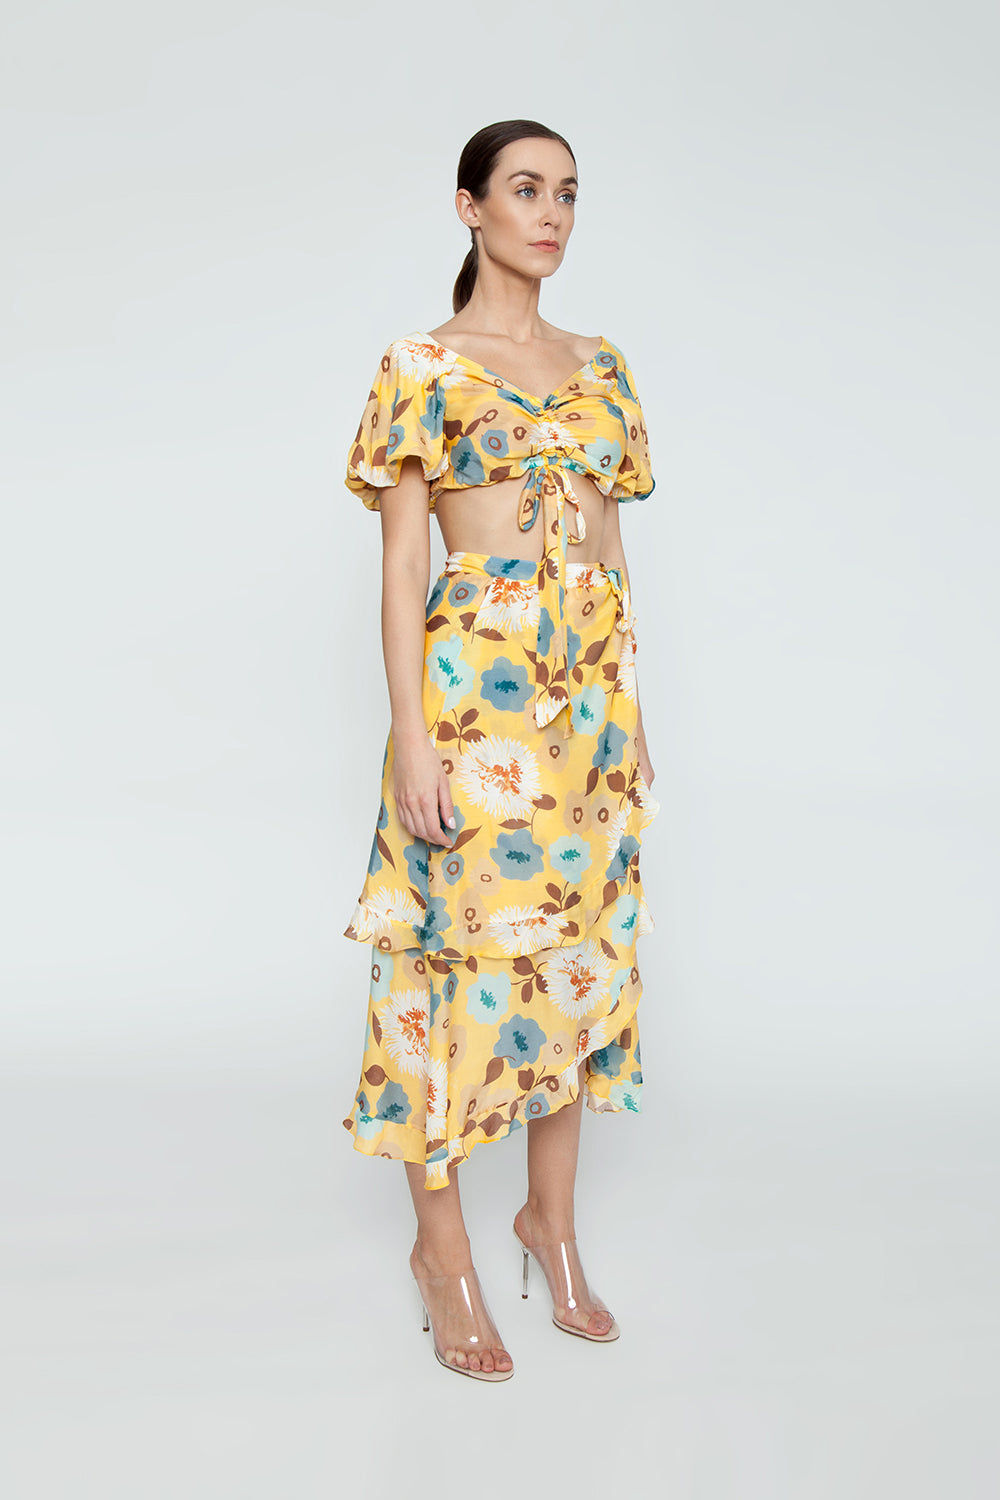 CLUBE BOSSA Sania Hi Lo Skirt - Cristal La Beija Floral Print Skirt | Cristal La Beija Floral Print| Clube Bossa Sania Hi Lo Skirt - Cristal La Beija Floral Print. Features:  High rise skirt Yellow floral print Mid-length Ruffle details Side View